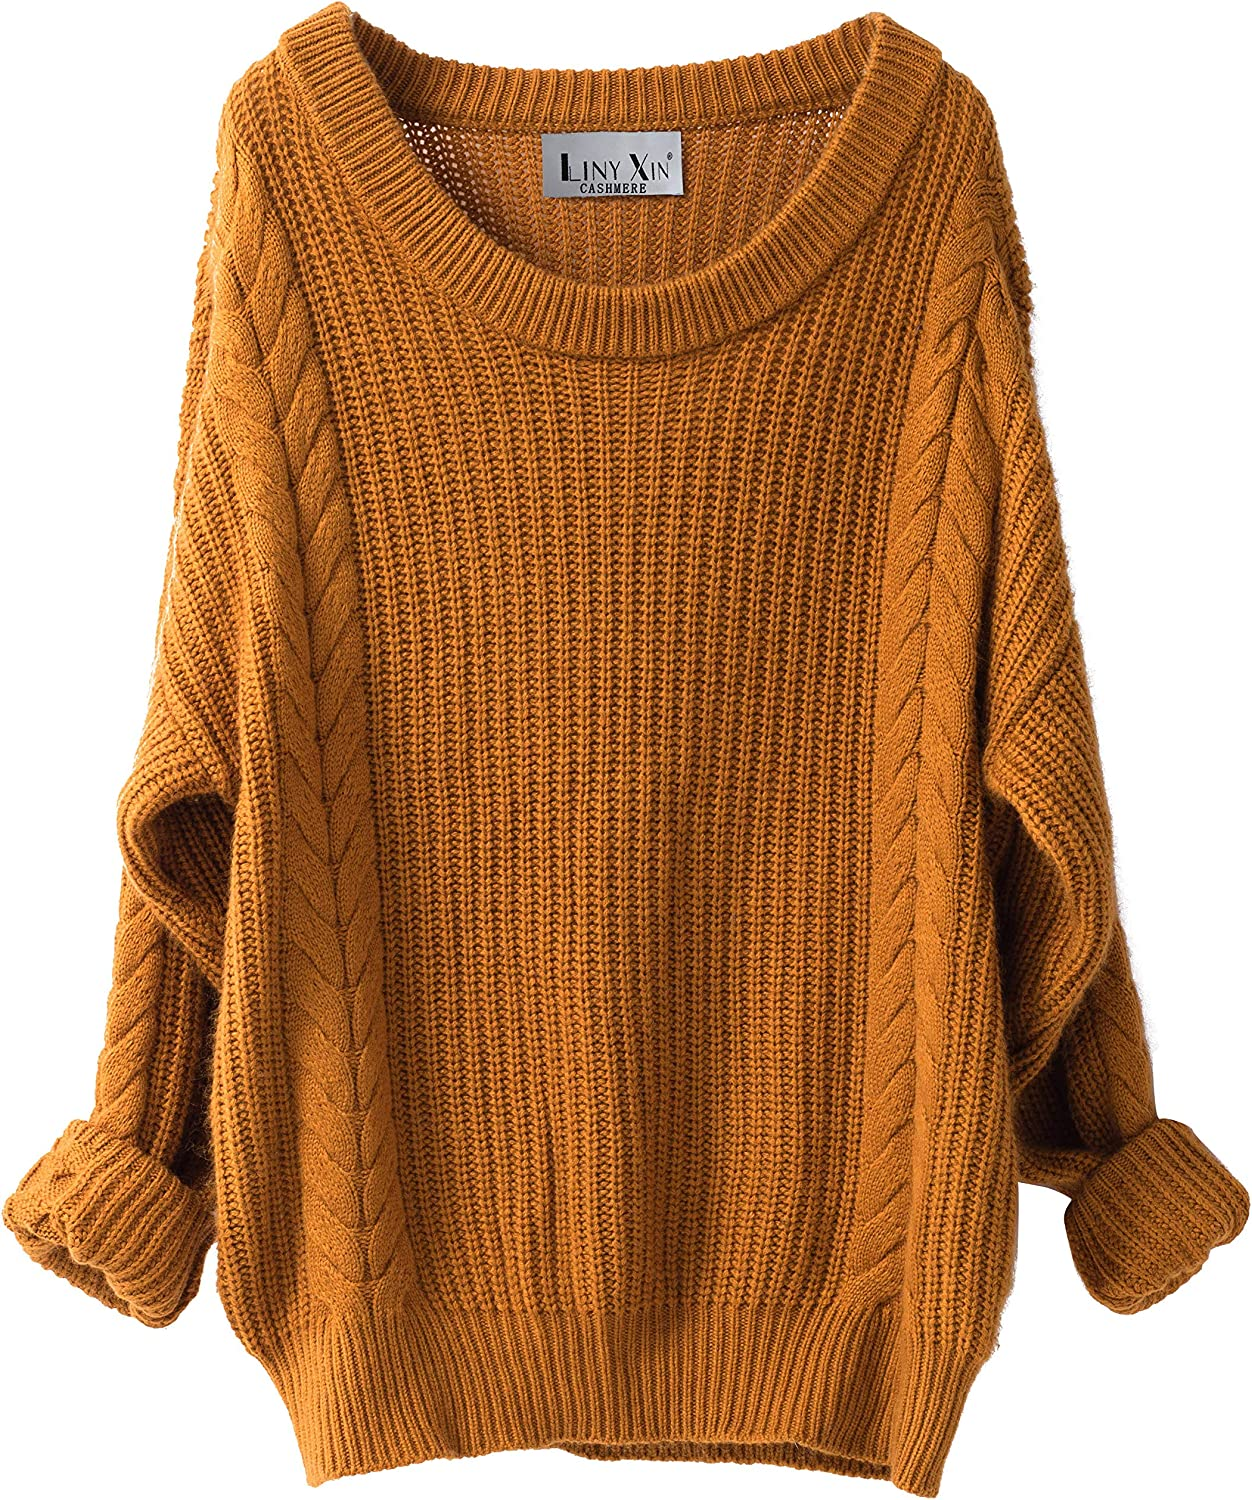 Liny Xin Women's Cashmere Oversized Loose Knitted Crew Neck Long Sleeve Winter Warm Wool Pullover Long Sweater Dresses Tops